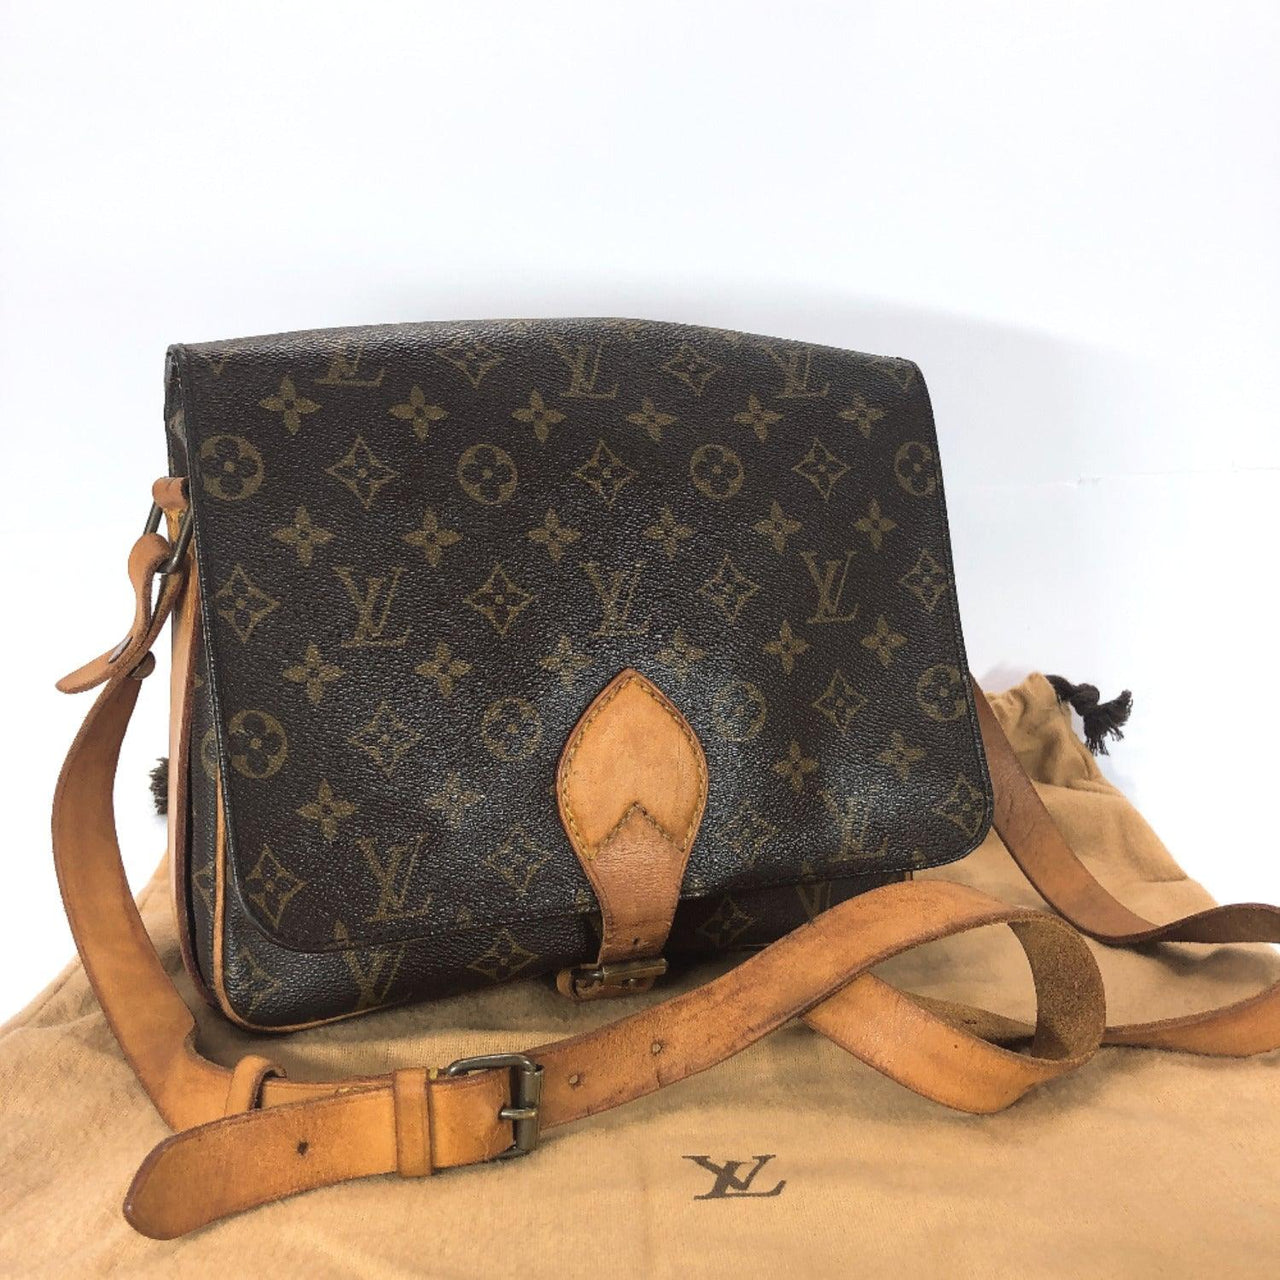 LOUIS VUITTON Louis Vuitton Cartouchiere M51252 Shoulder Bag Monogram Canvas Brown Ladies Used